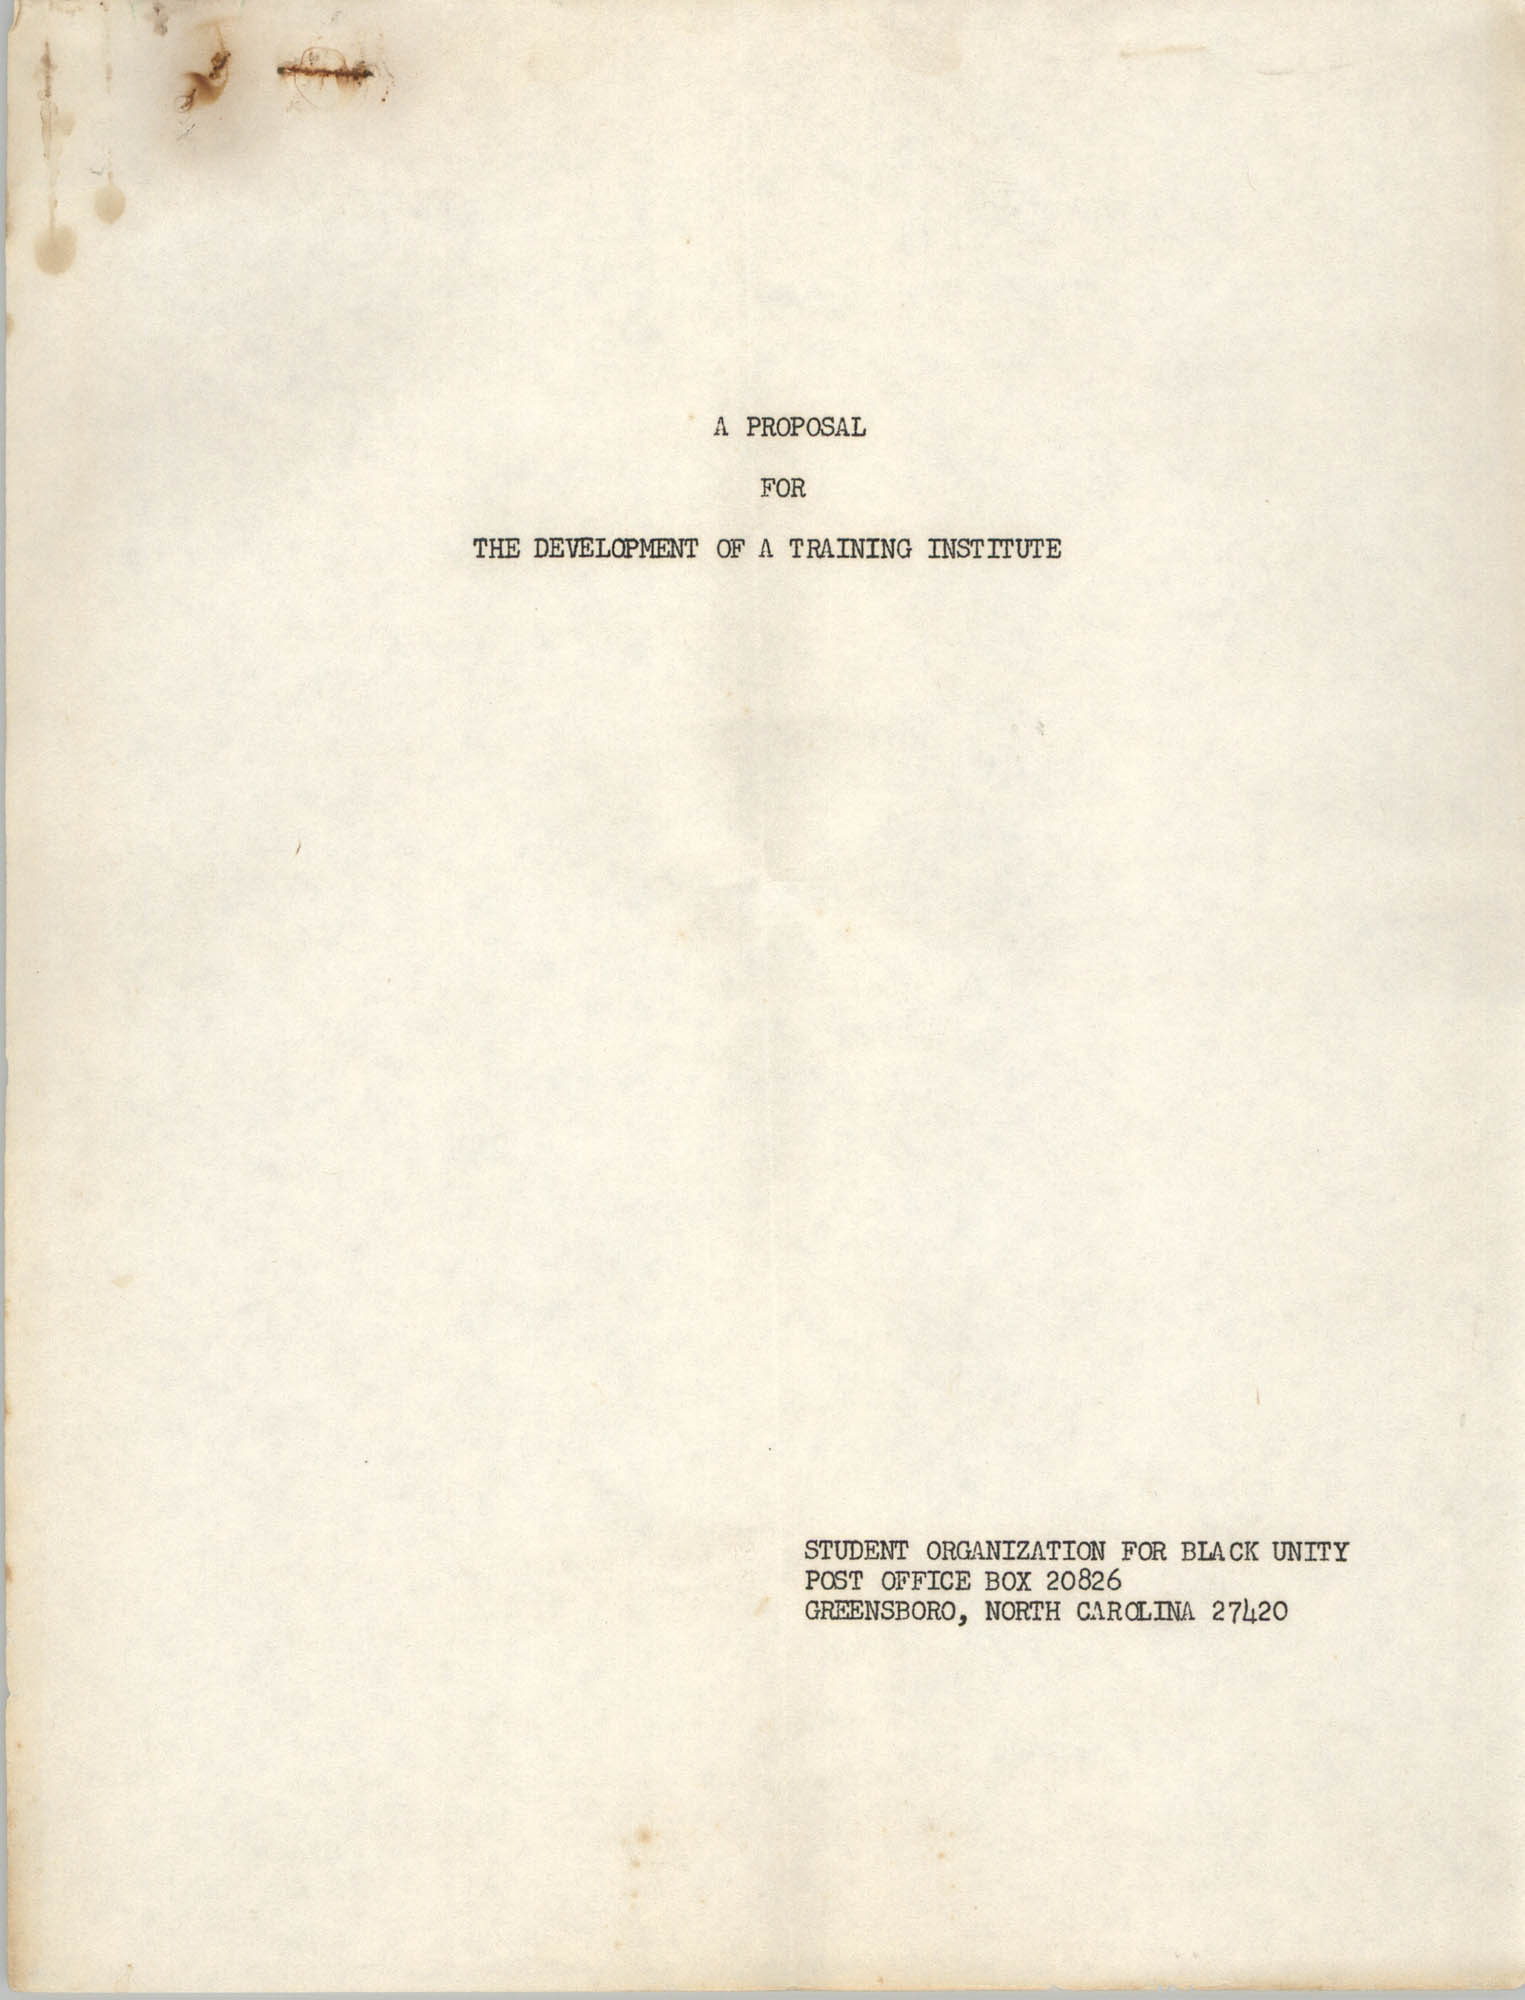 A Proposal for the Development of a Training Institute, Title Page